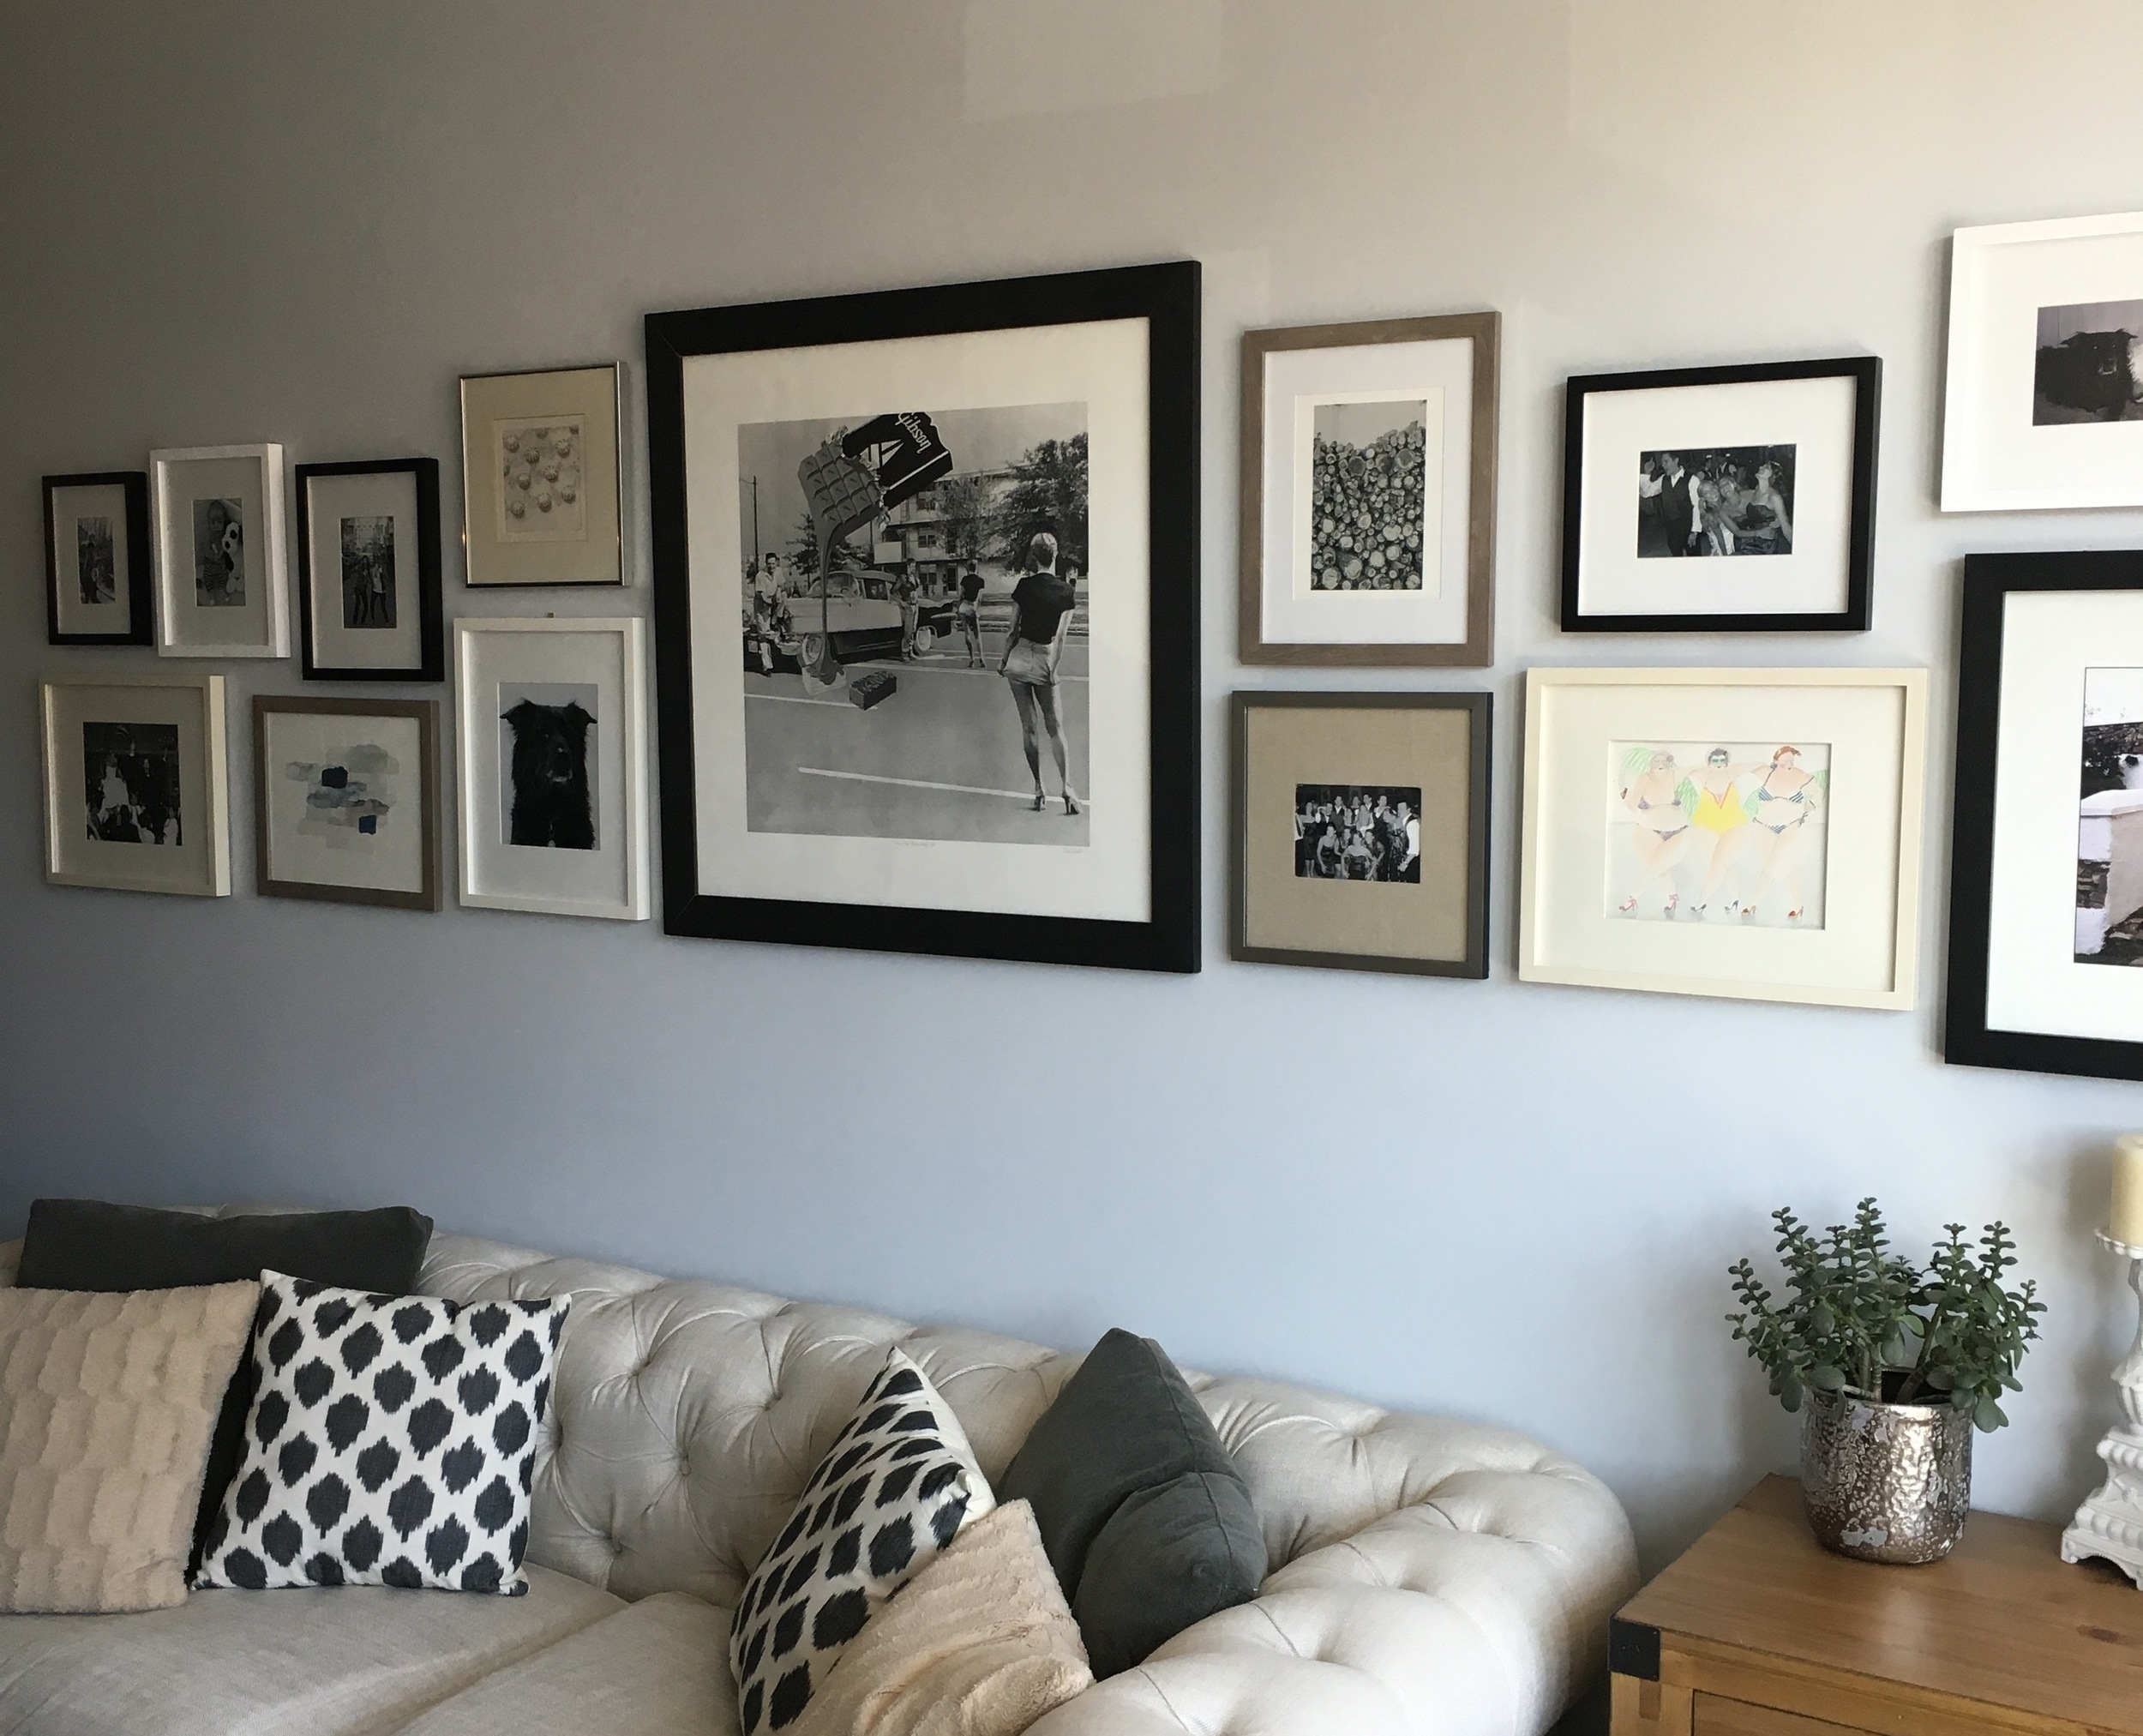 AFTER: A unique gallery wall featuring some of our favorite photographs and artwork.